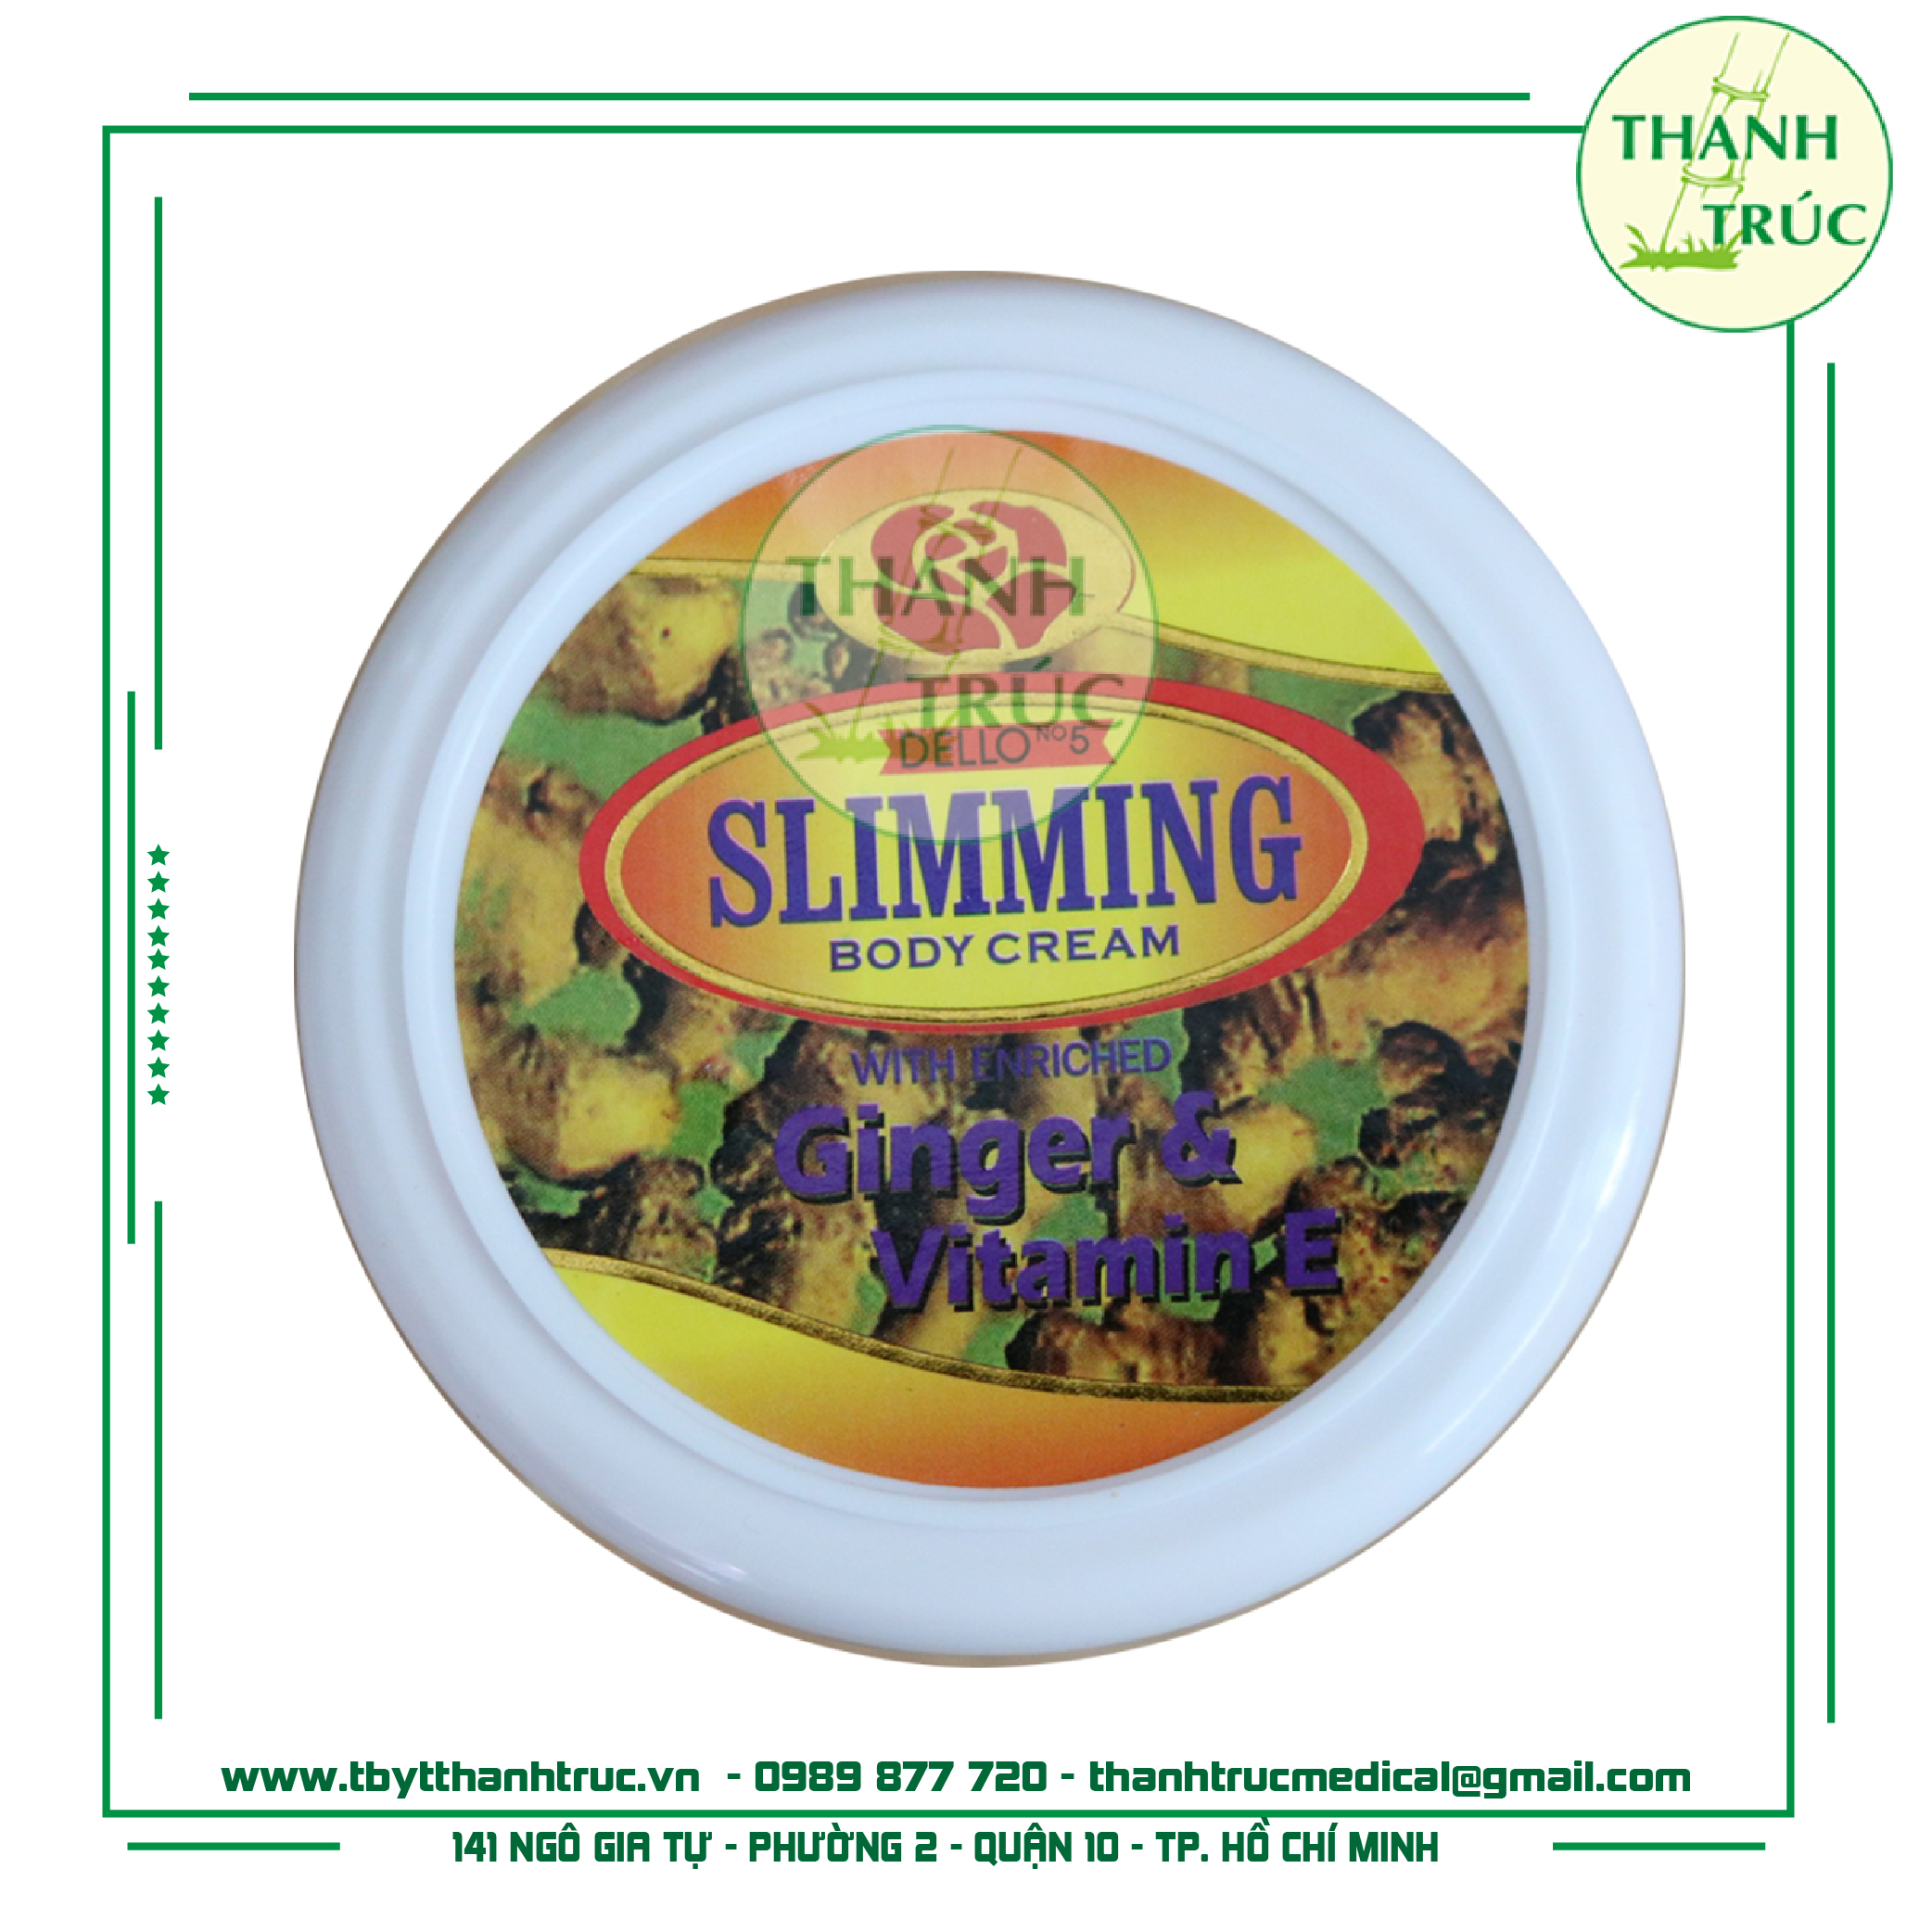 Kem tan mỡ Slimming Body Cream